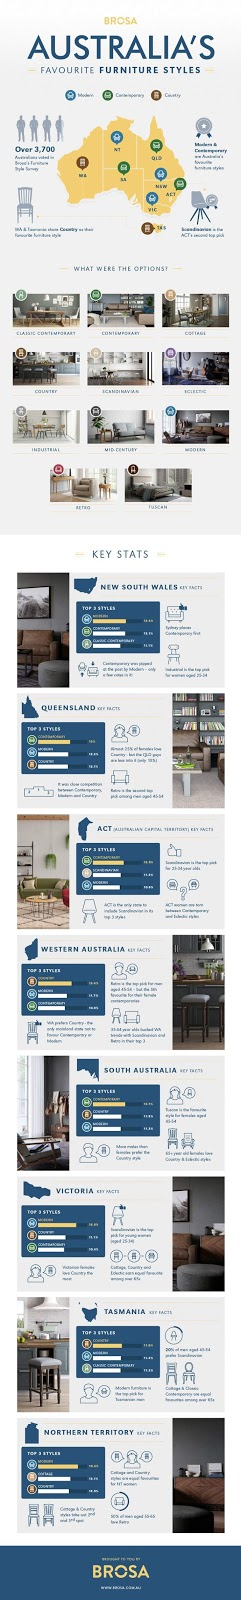 most popular furniture styles. infographic source httpswwwbrosacomaupagesaustraliasfavourite furniturestyles most popular furniture styles